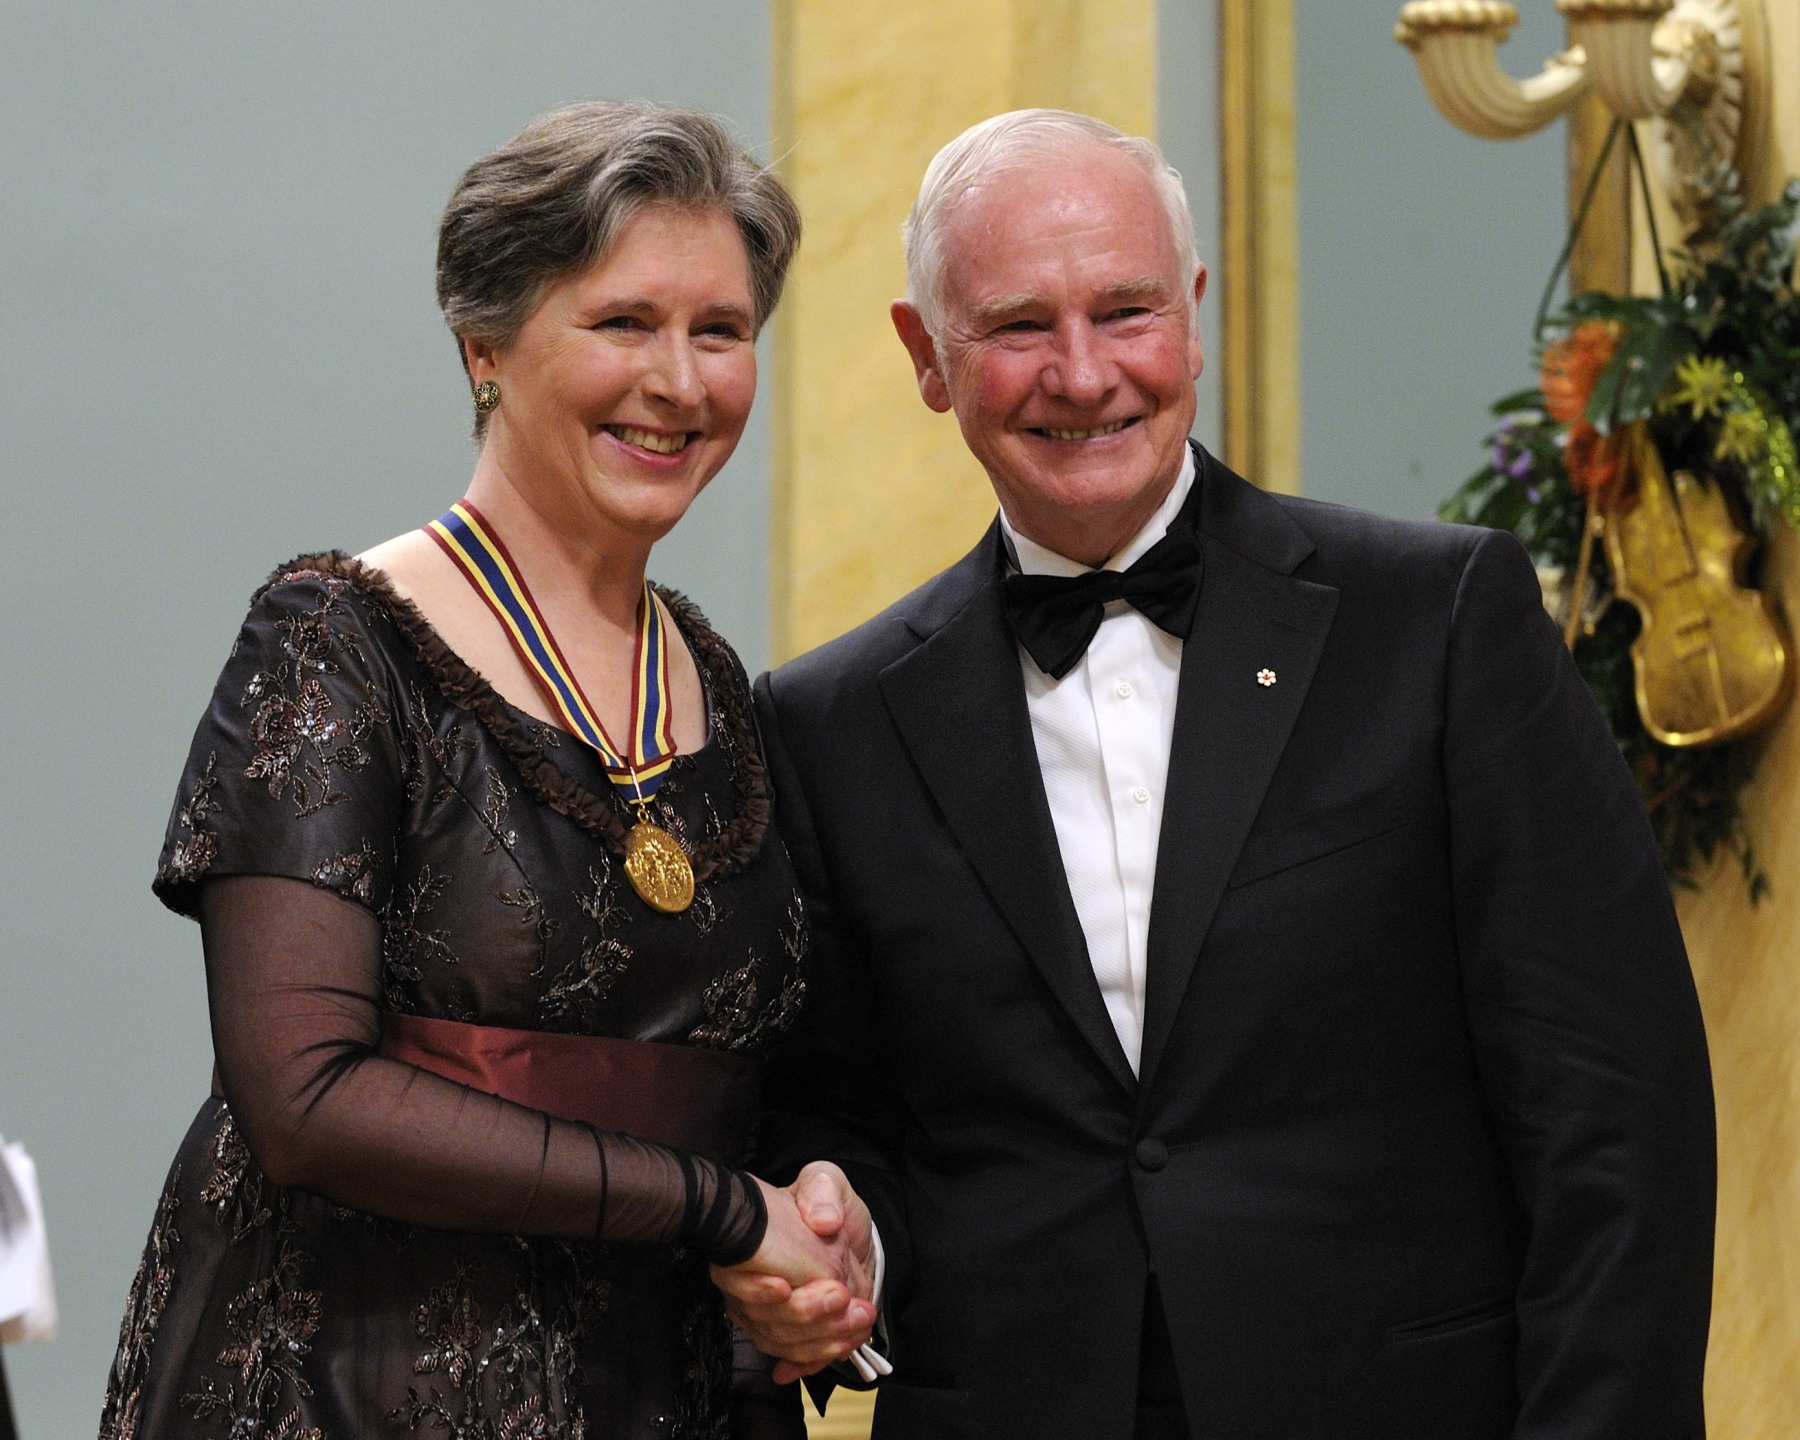 Ms. Janina Fialkowska, concert pianist, received the Lifetime Artistic Achievement Award.